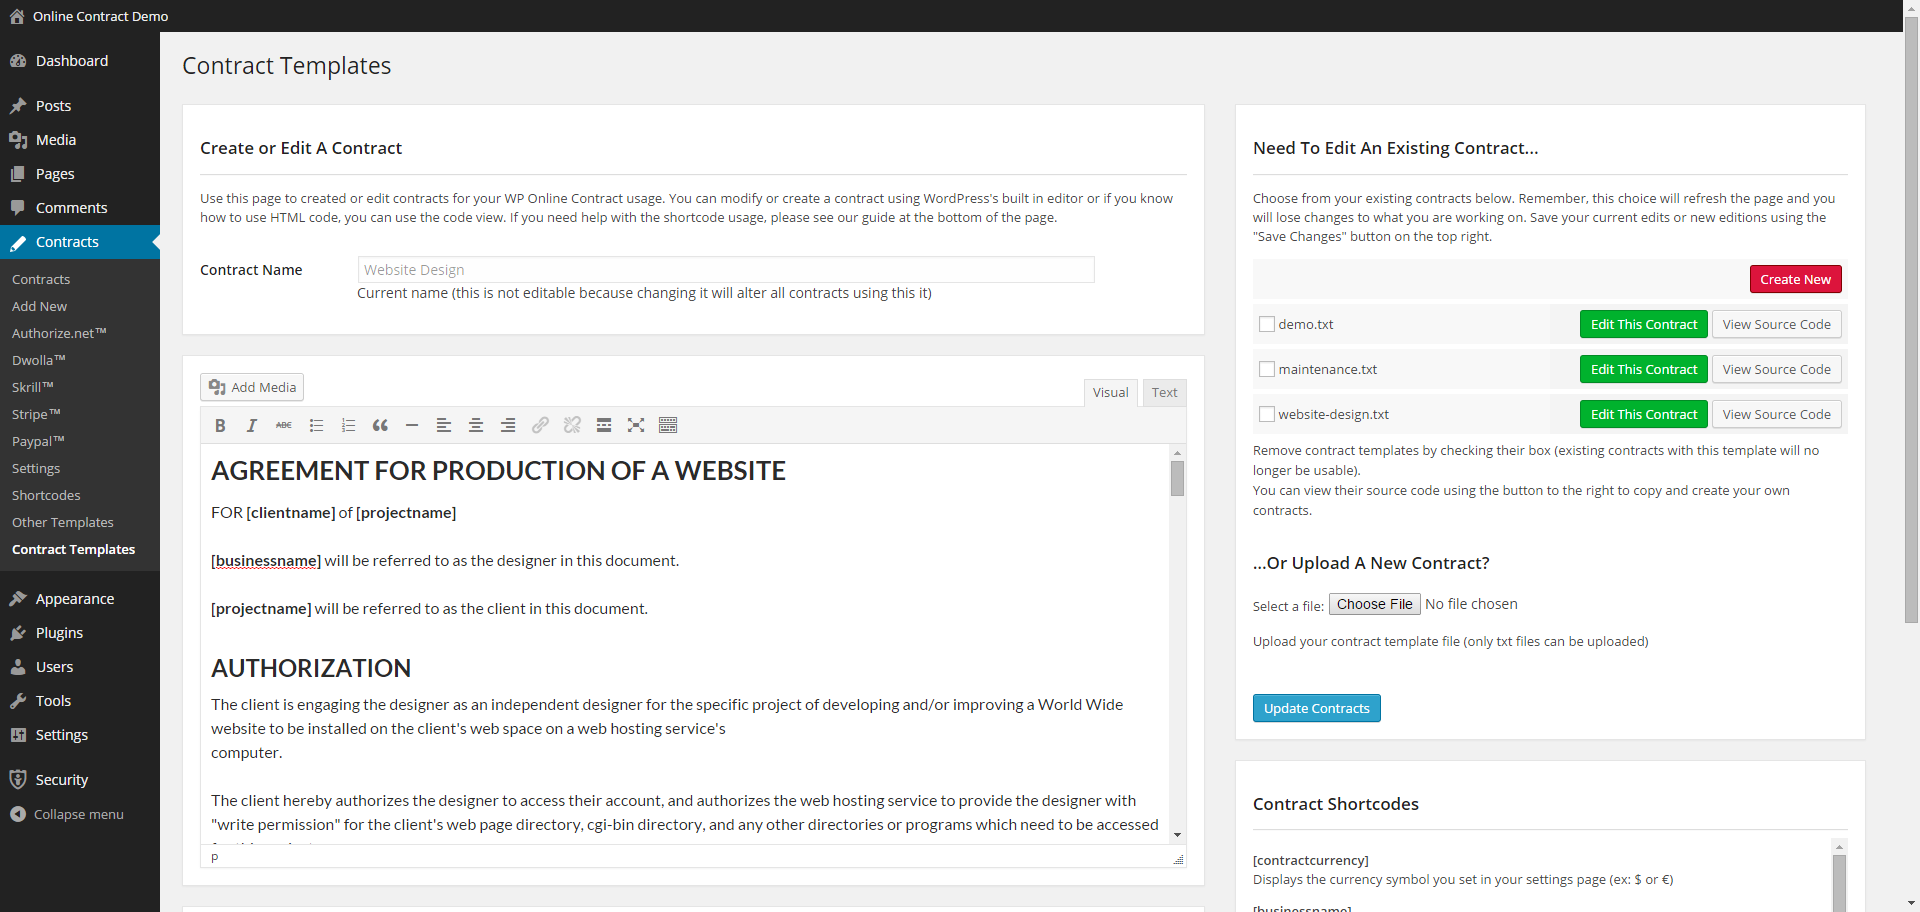 Free Online Contracts Templates Fiveoutsiderscom - Free online contract templates